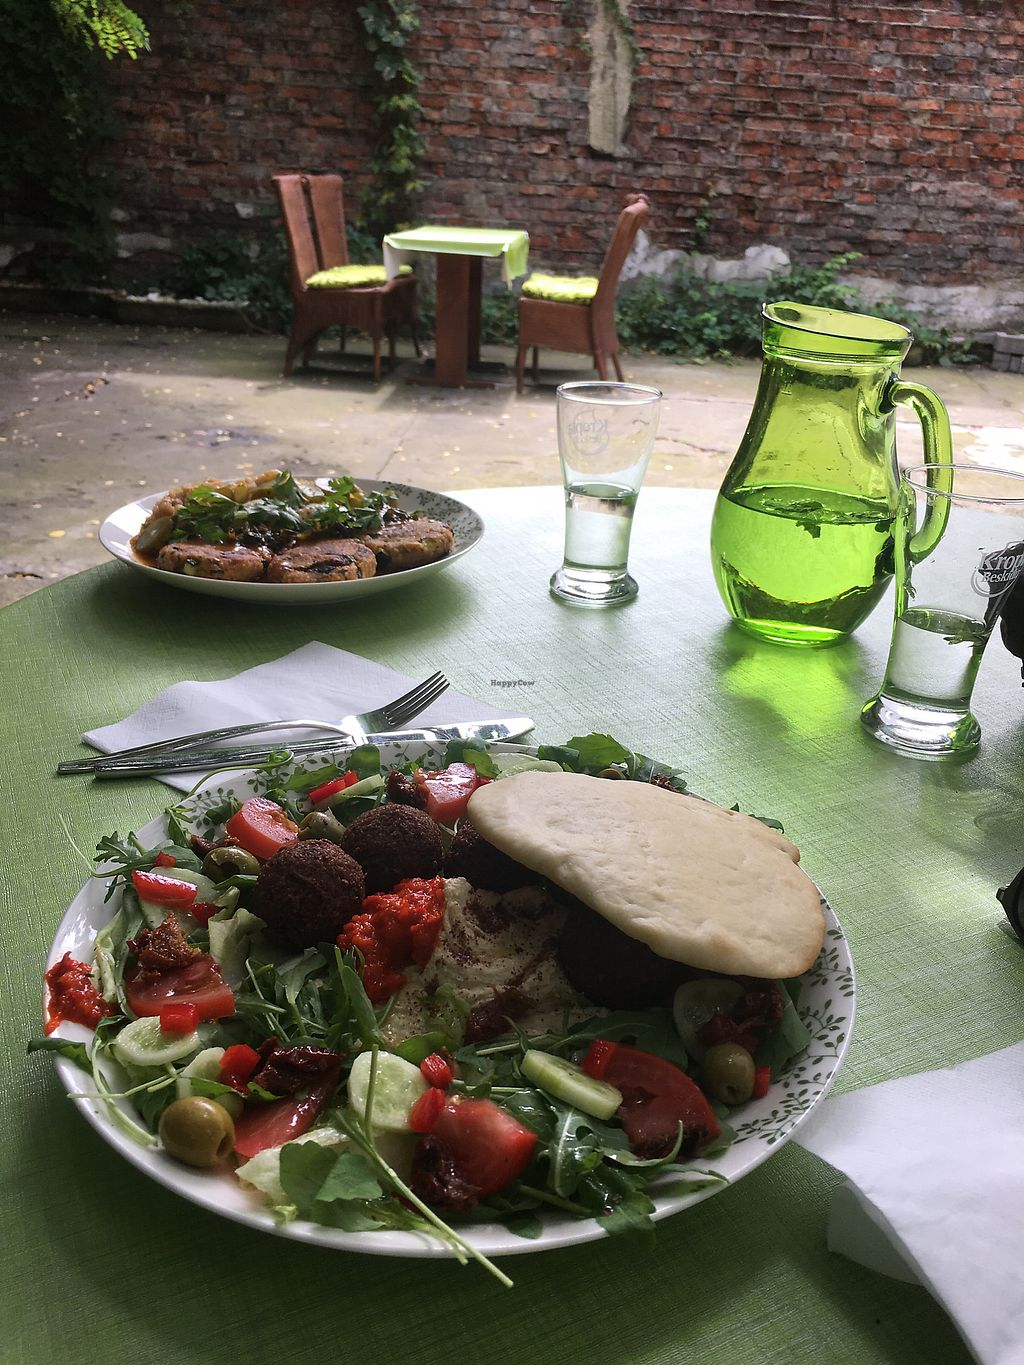 """Photo of Zielona Micha  by <a href=""""/members/profile/Rucri"""">Rucri</a> <br/>falafel plate with home made hummus  <br/> July 21, 2017  - <a href='/contact/abuse/image/94991/282853'>Report</a>"""